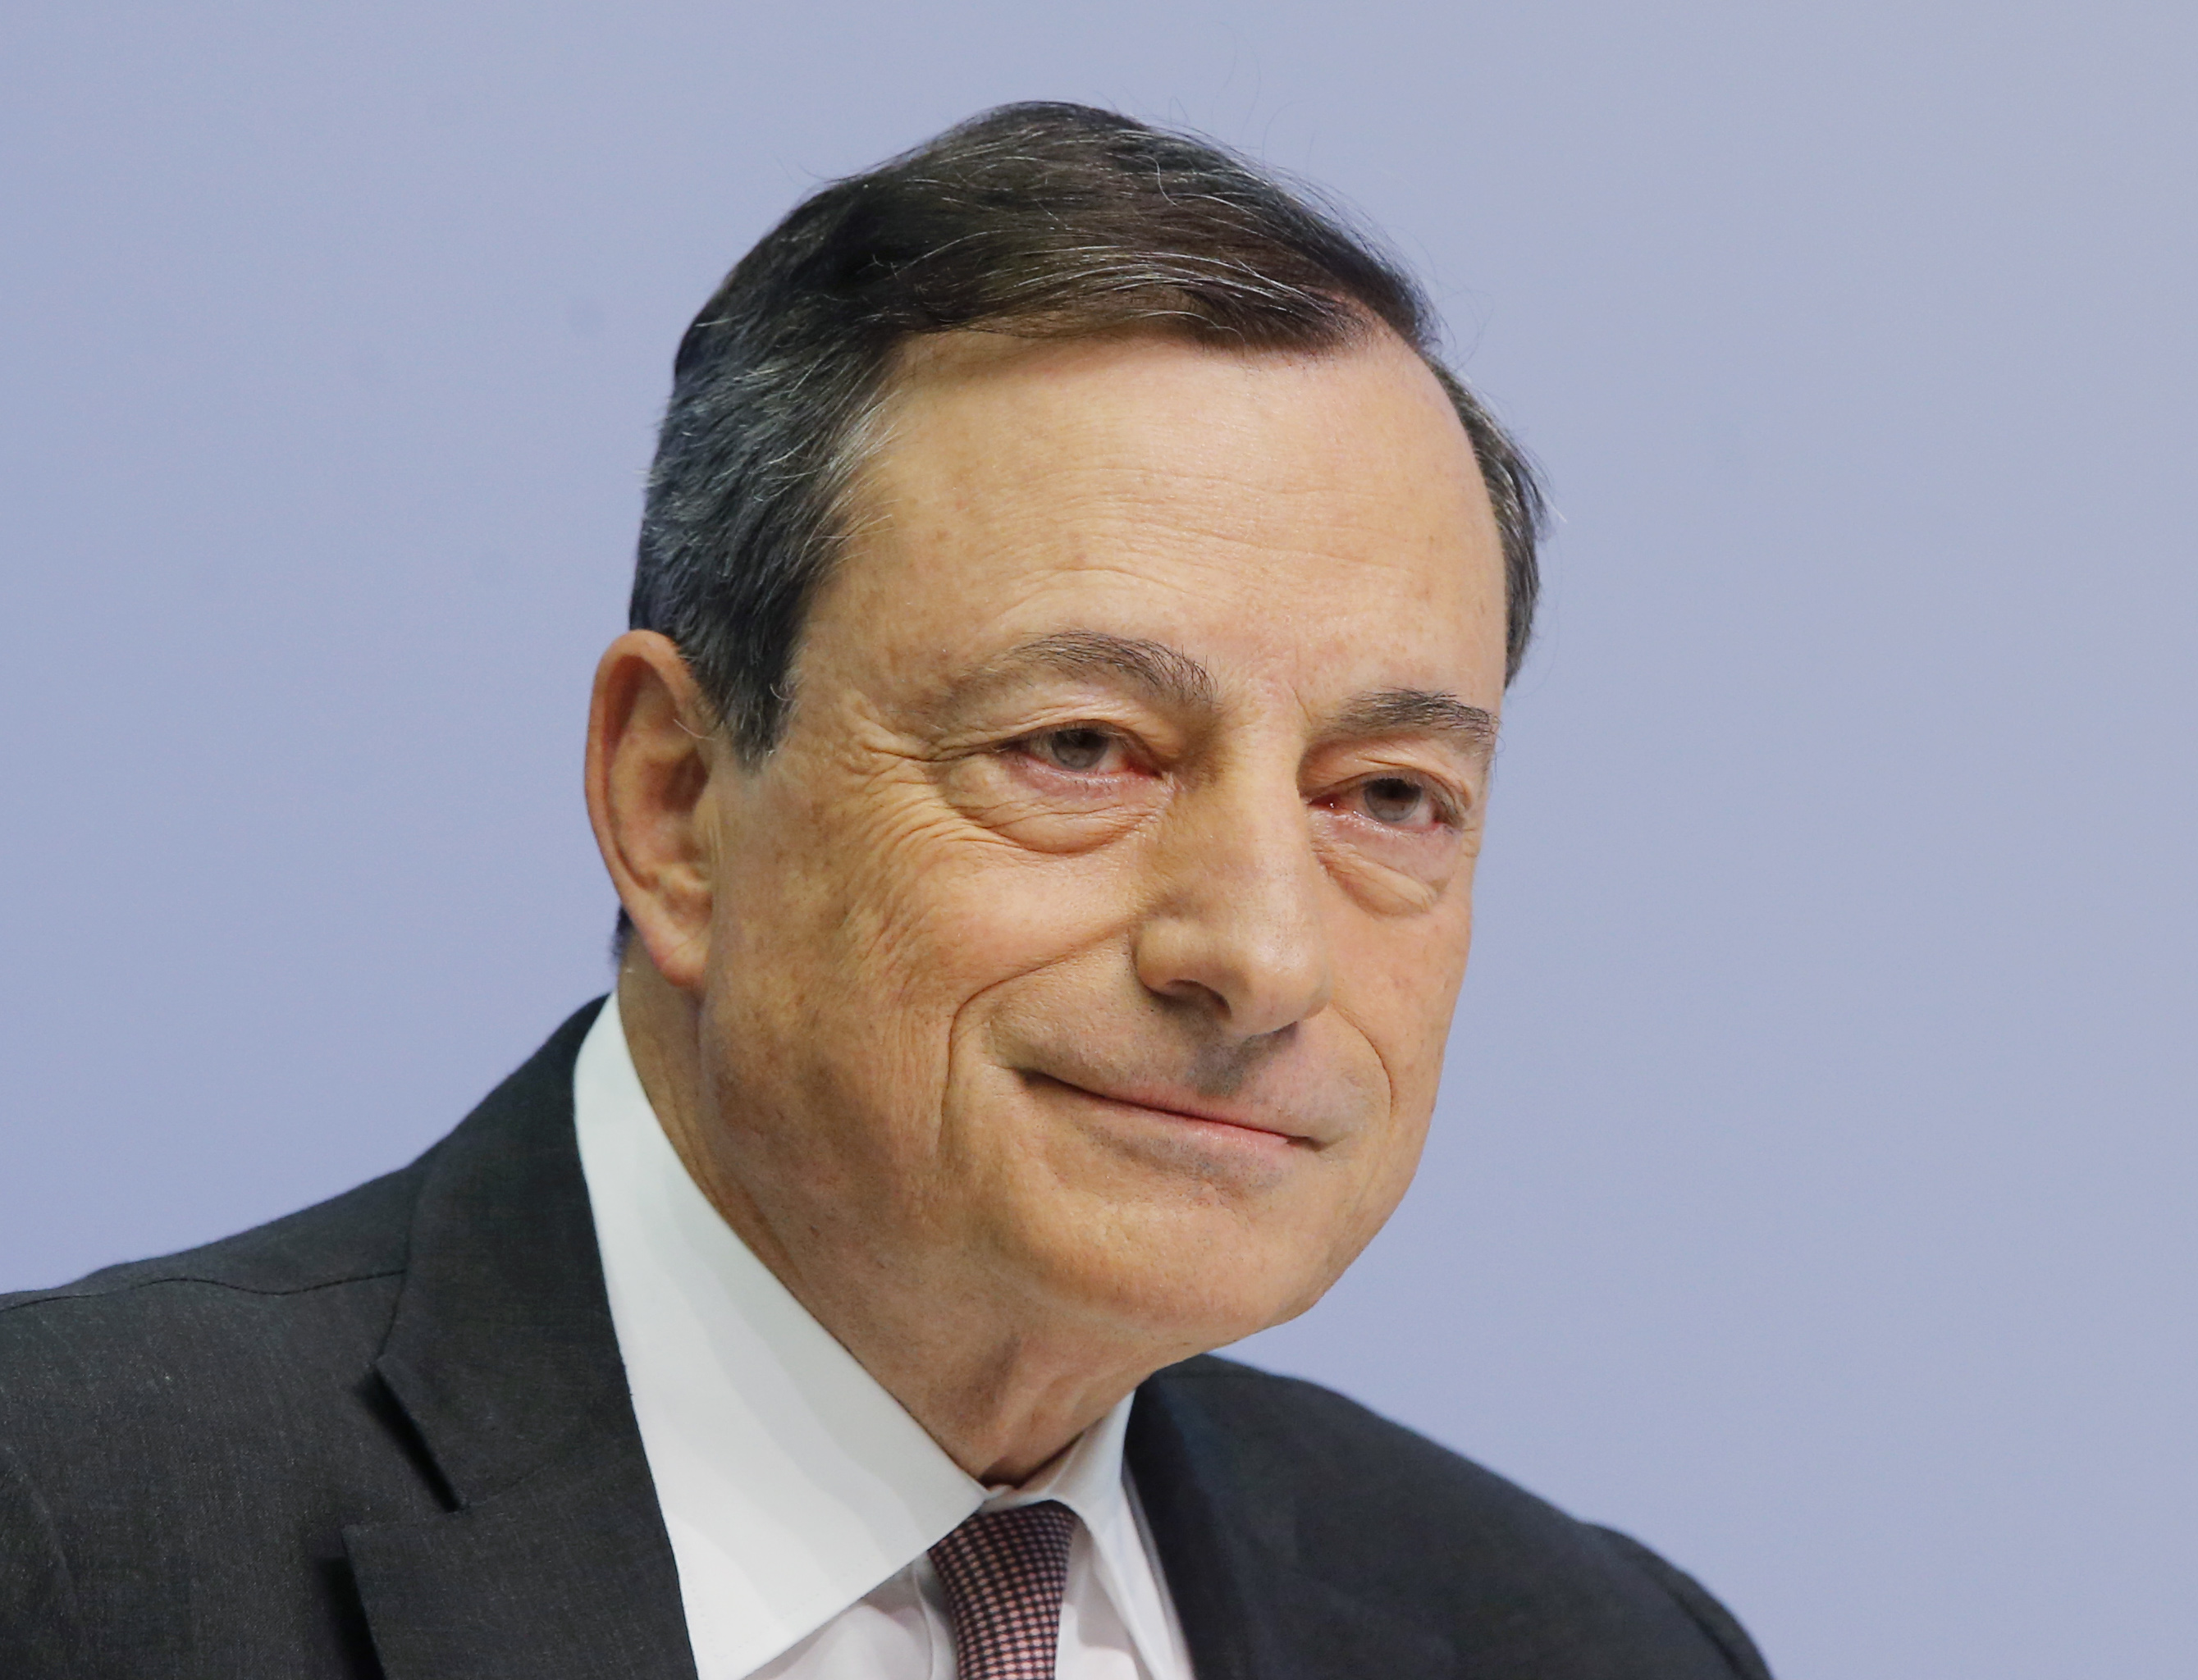 Mário Draghi, presidente do BCE / Gtres